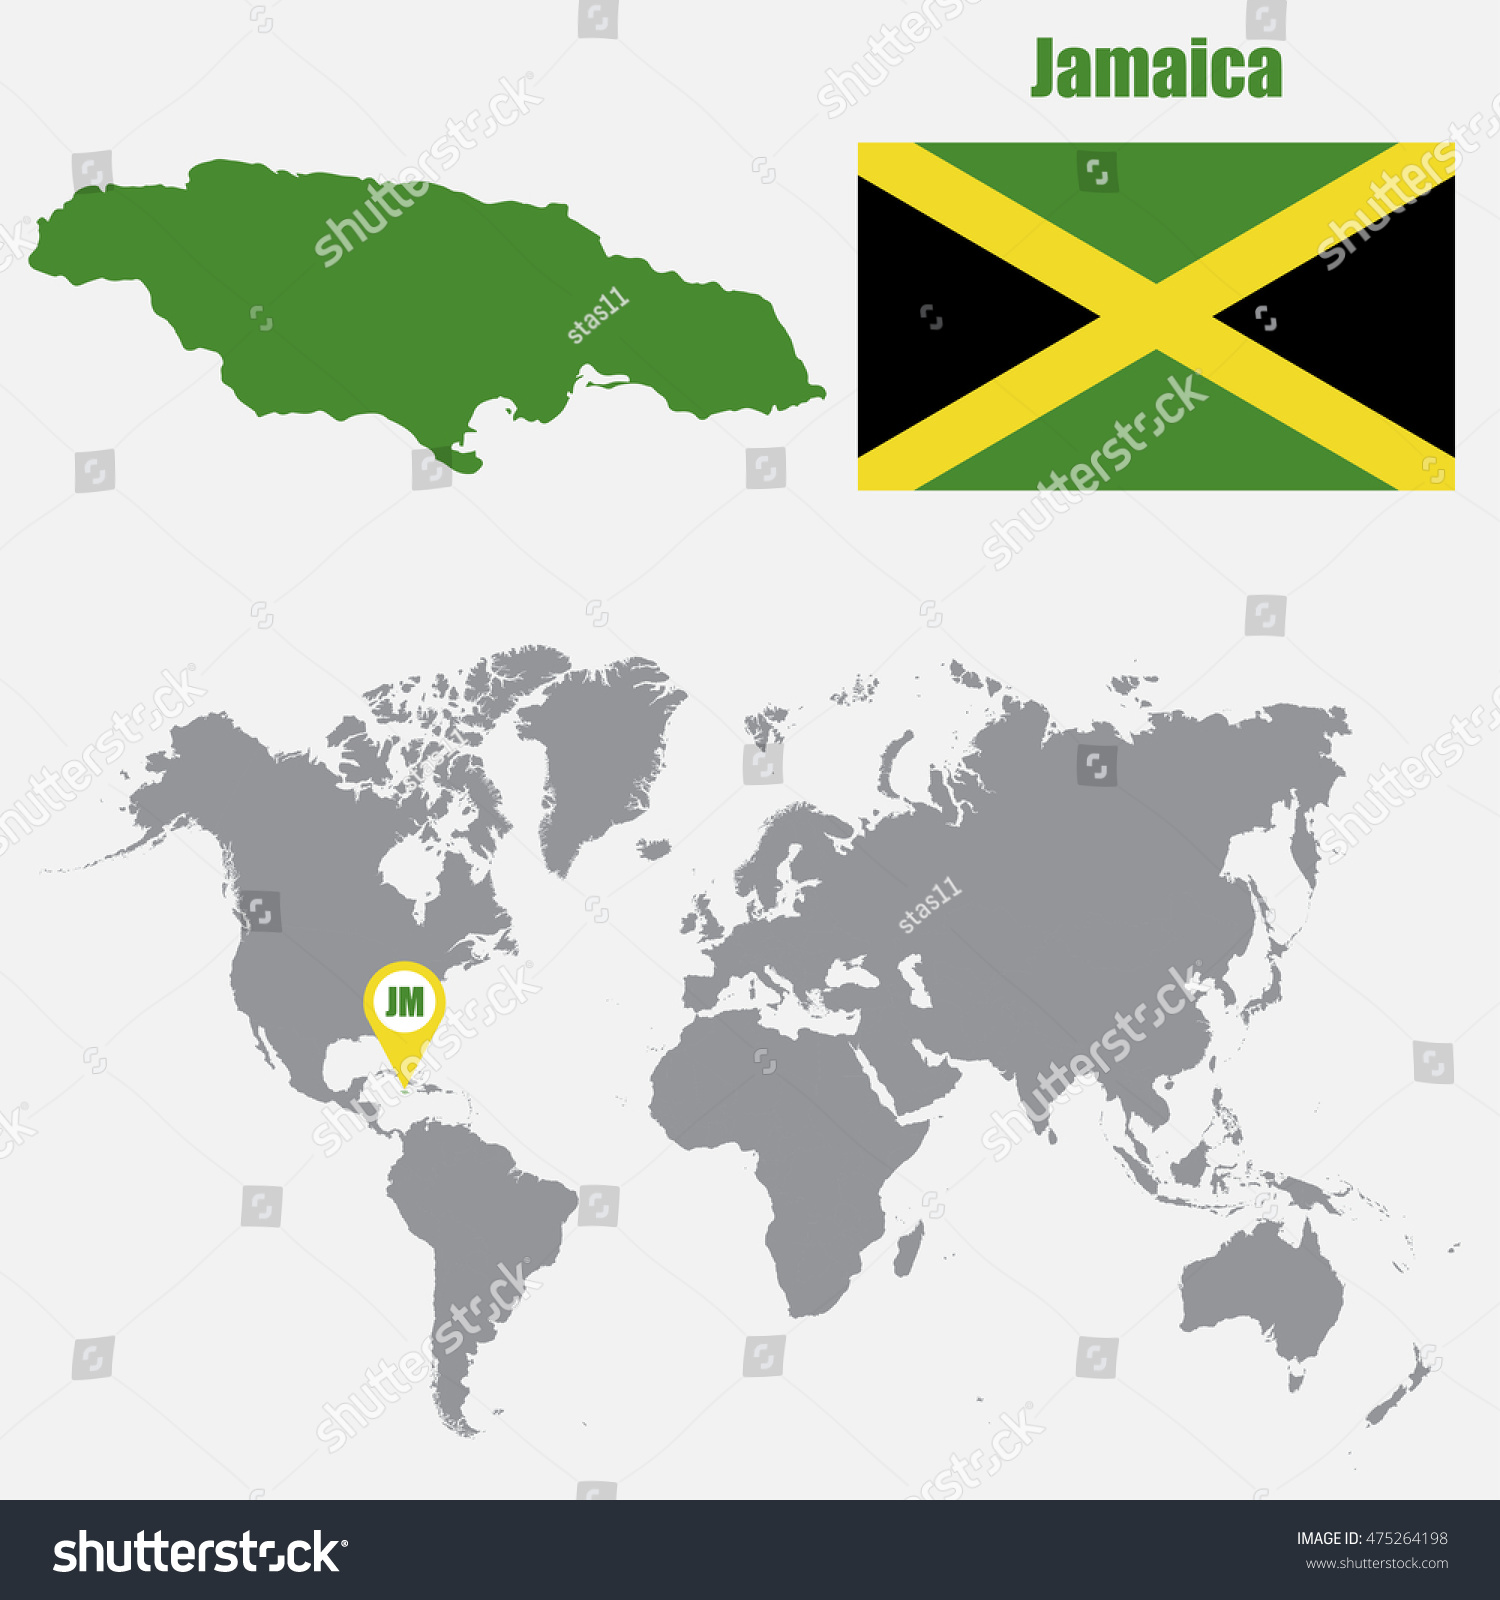 Jamaica Map On World Map Flag Stock Vector Shutterstock - World map jamaica